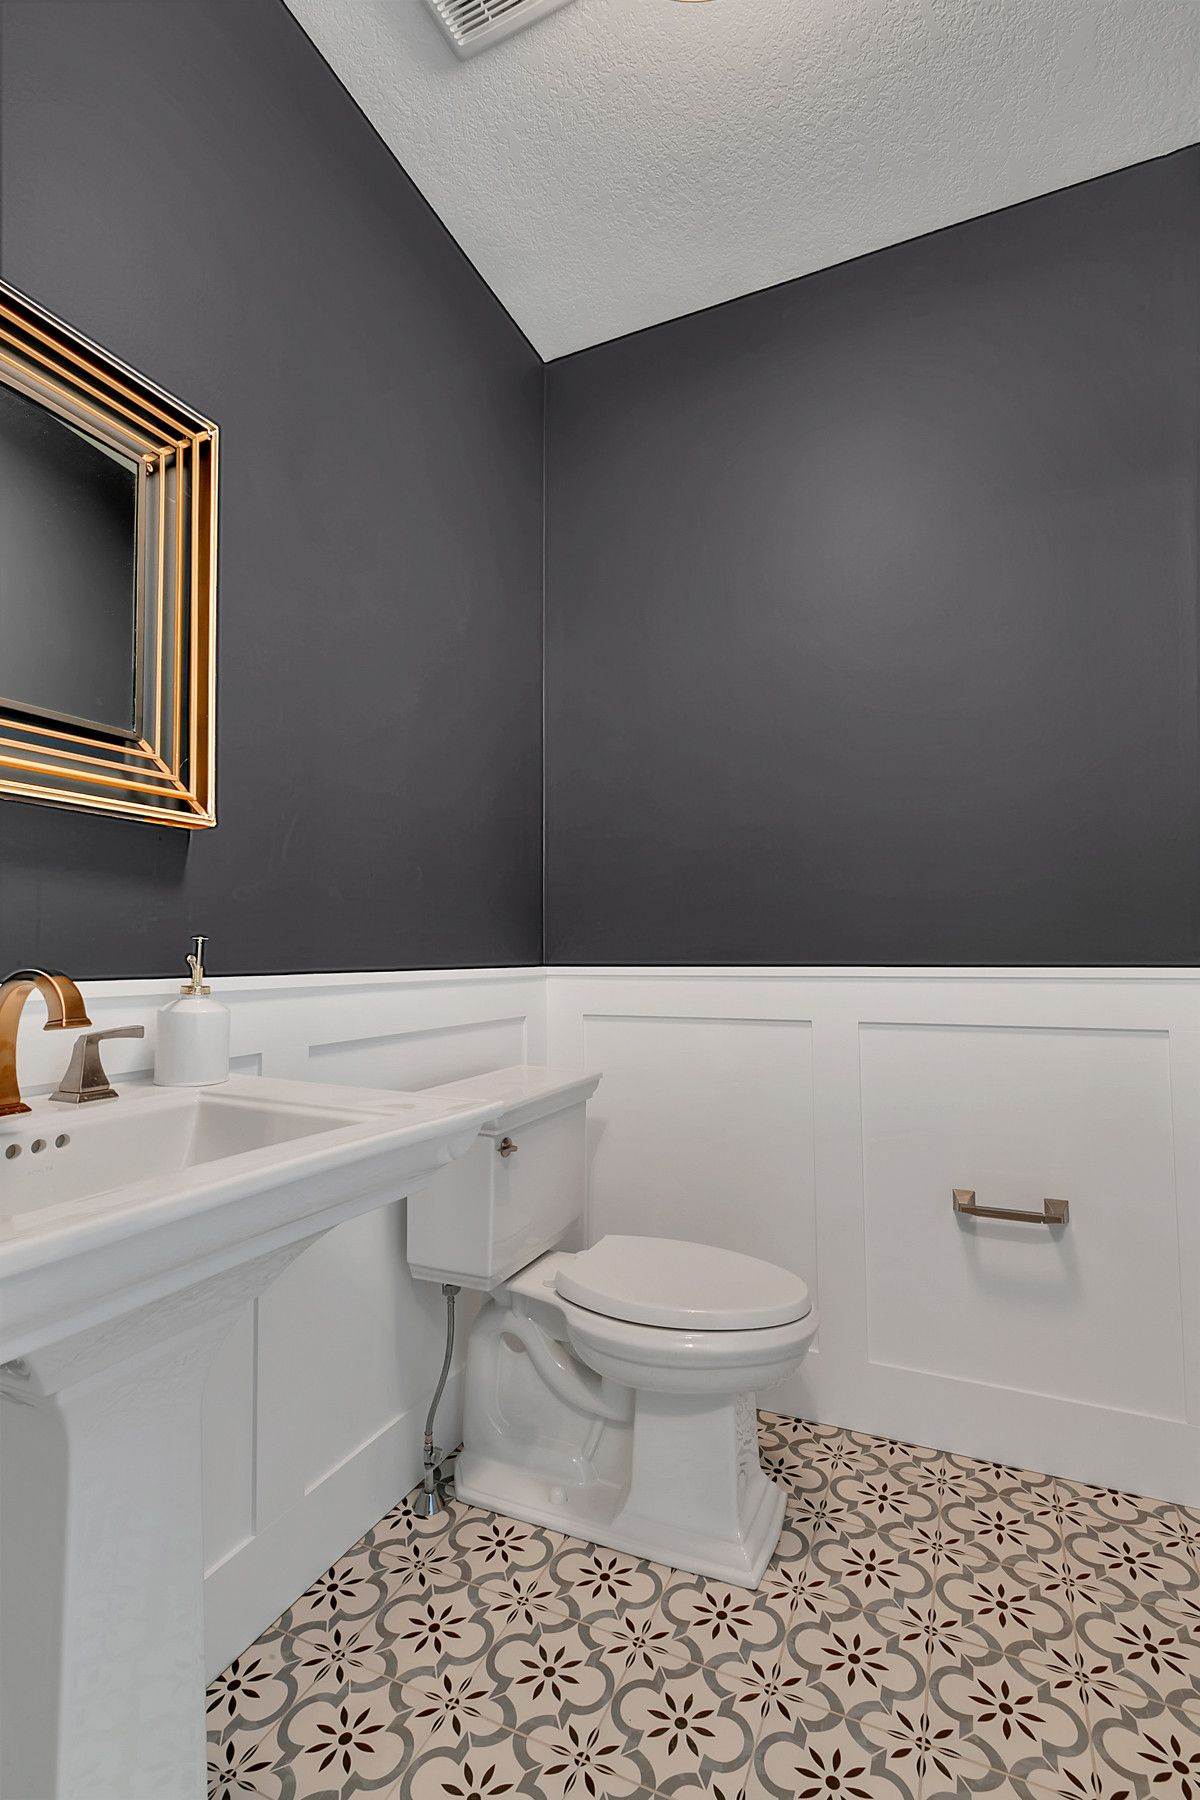 Dark-gray-and-white-bathroom-with-patterned-tiles-that-usher-in-more-visual-contrast-62386